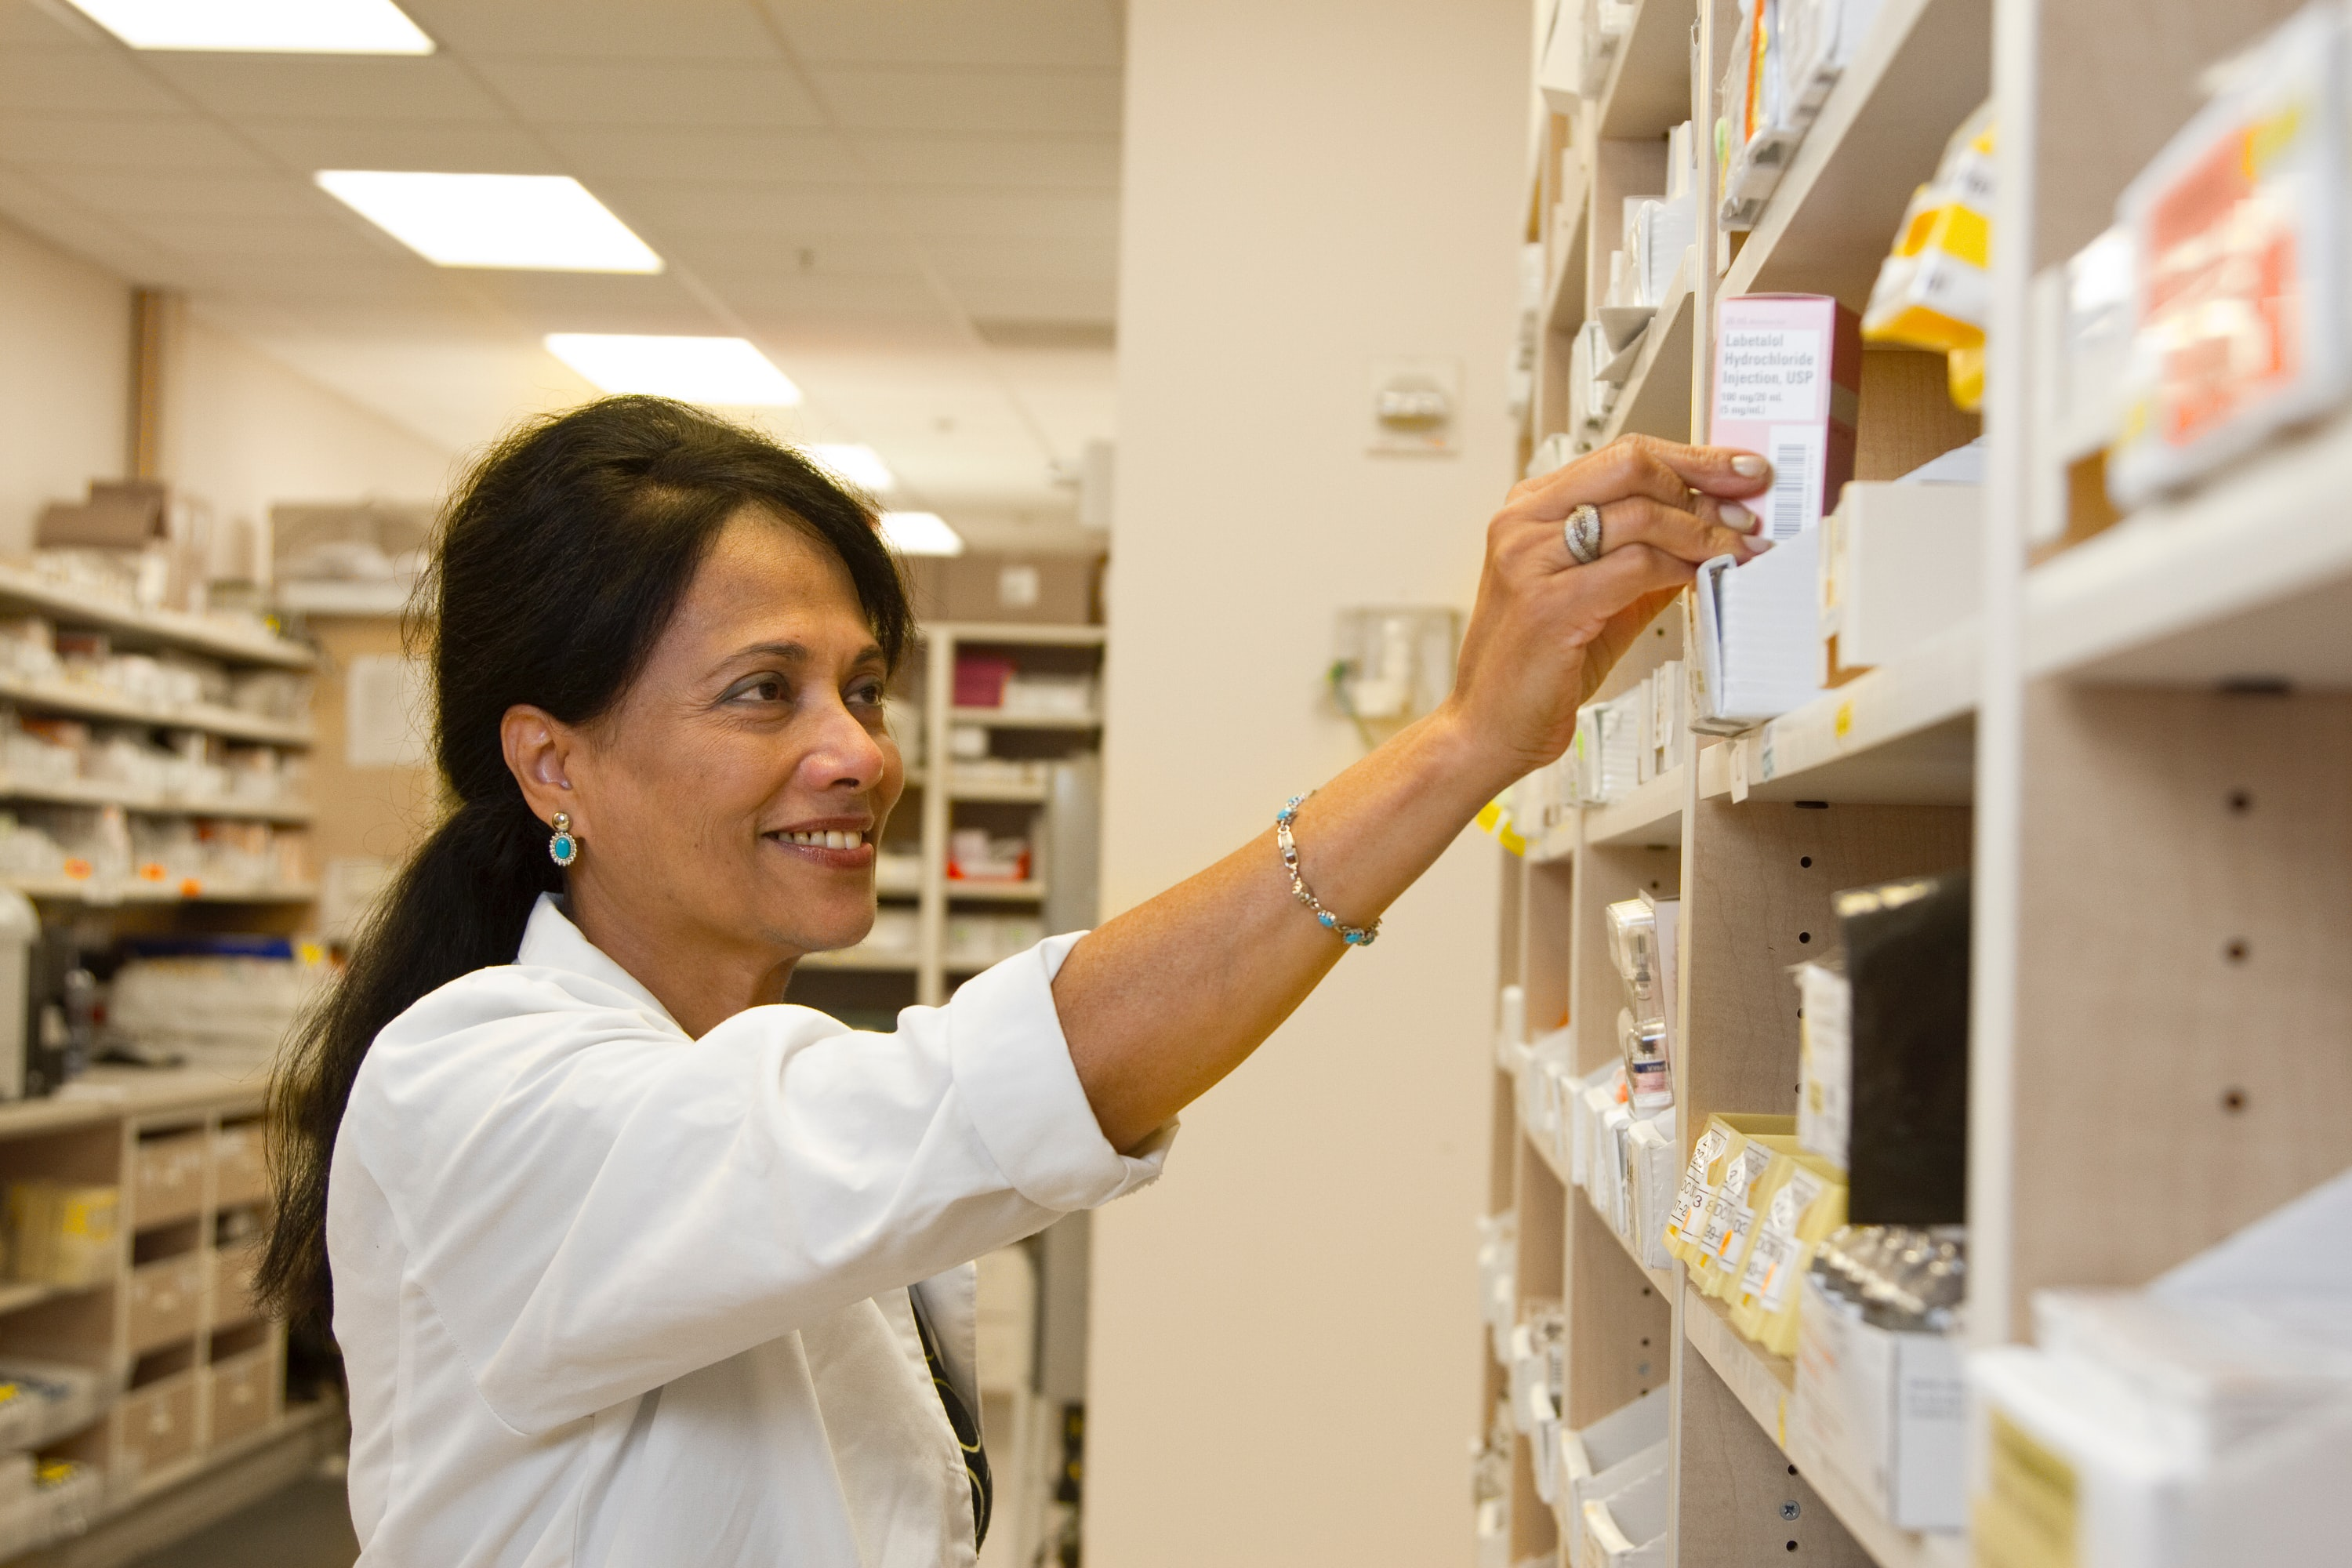 A pharmacist in one of the legit online pharmacies pulls a dispensing box of medication from a shelf.